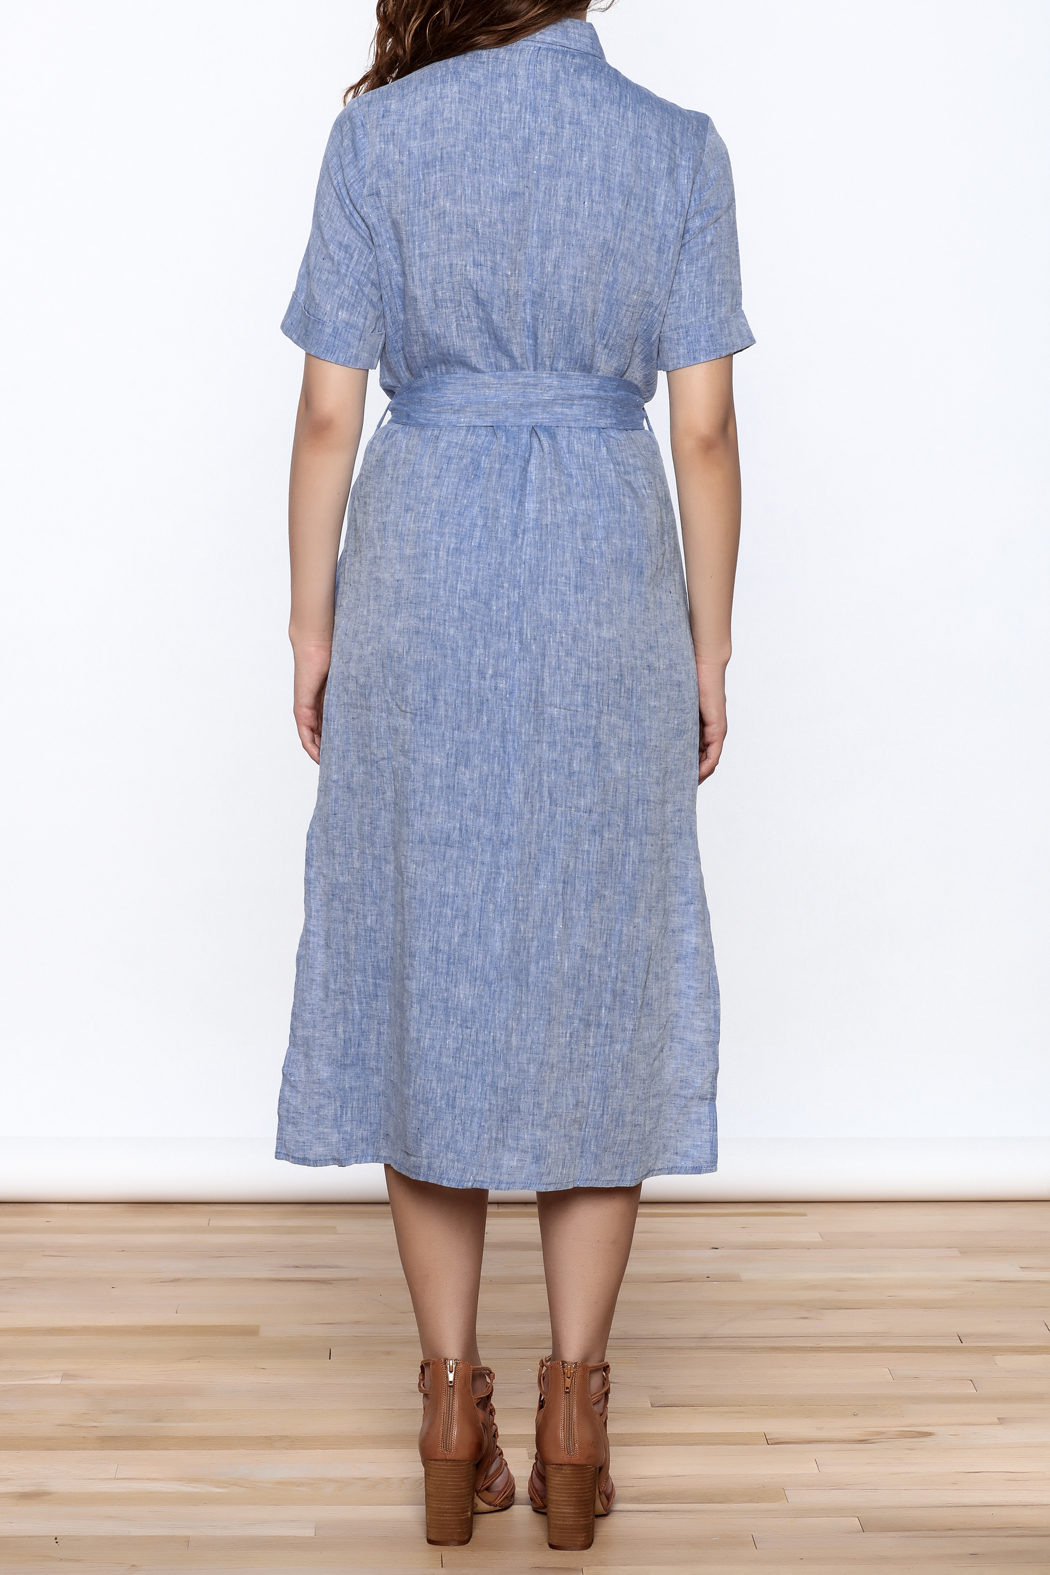 Ovi Linen Midi Dress From California By Isalis Shoptiques